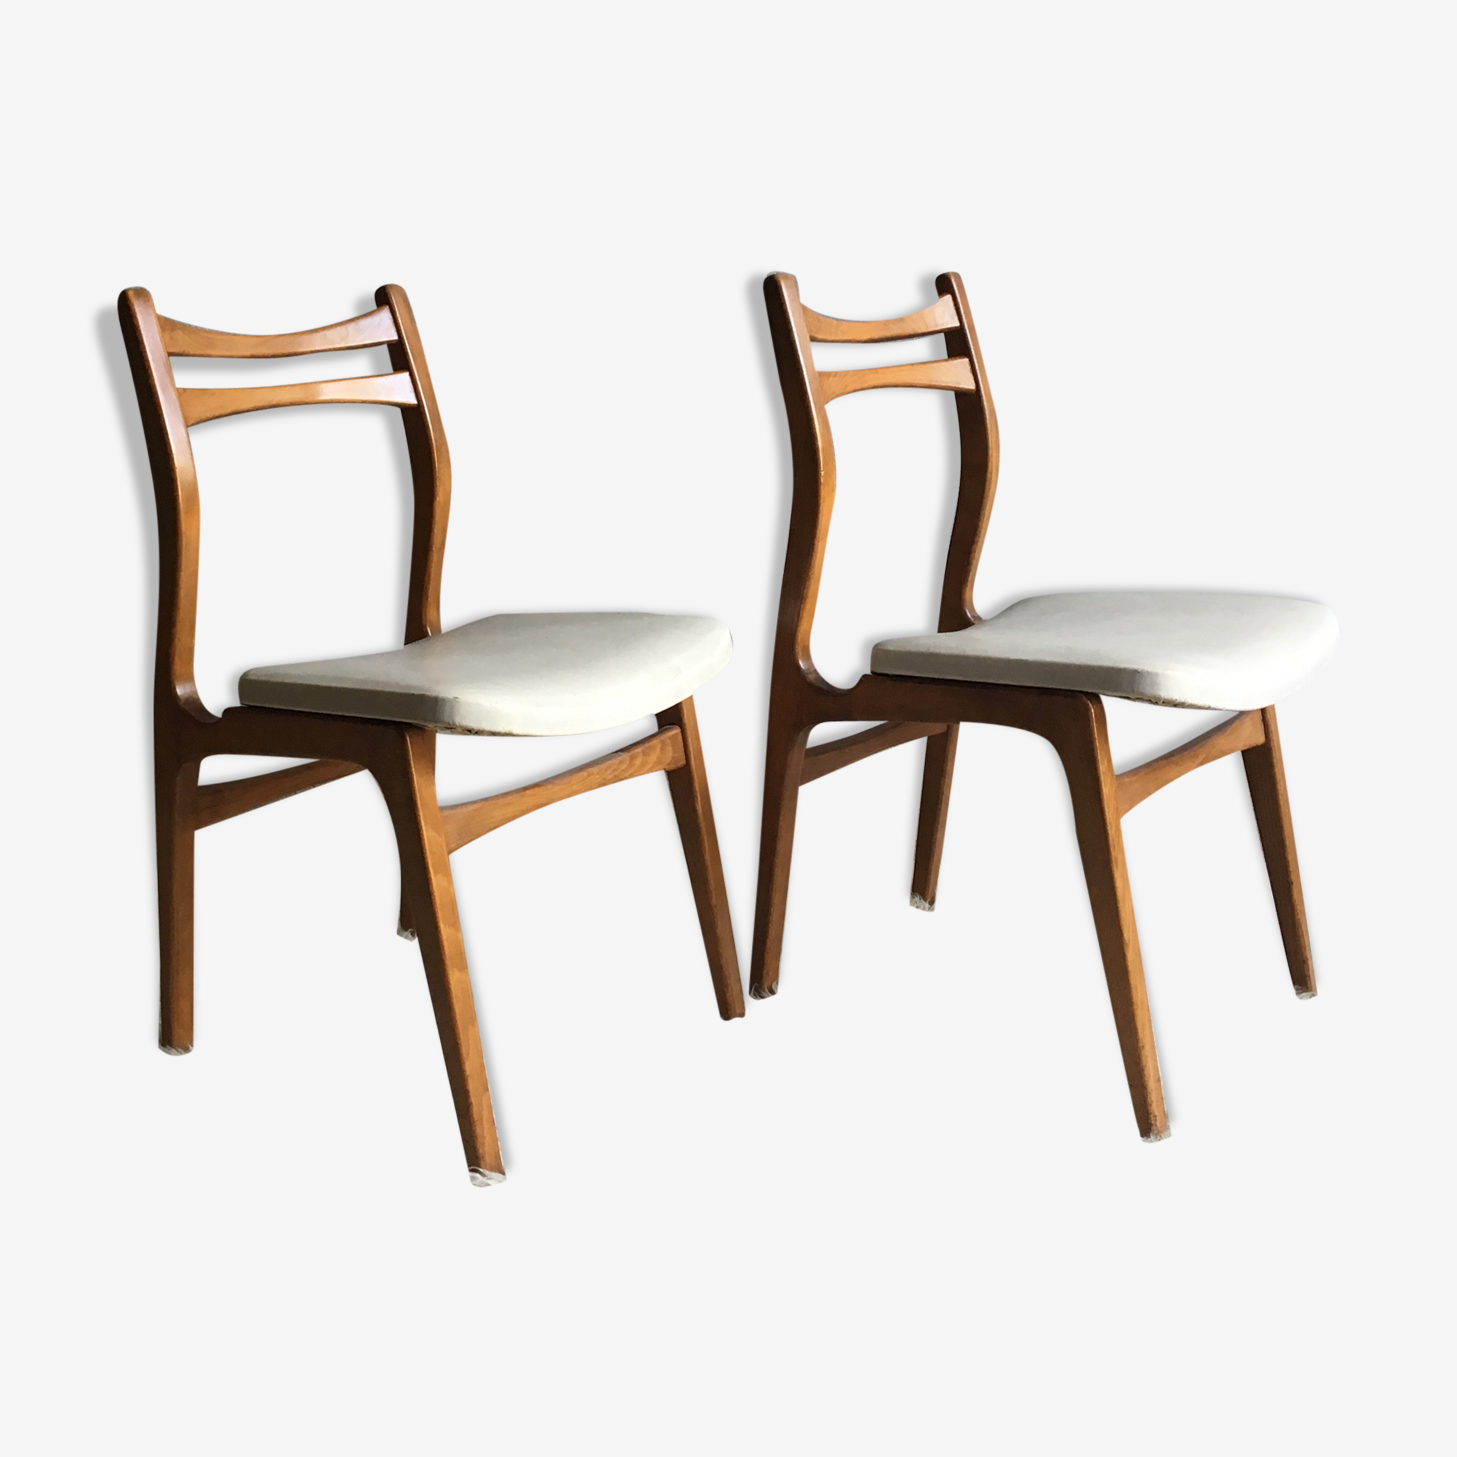 Chaises vintage style scandinaves  blanches